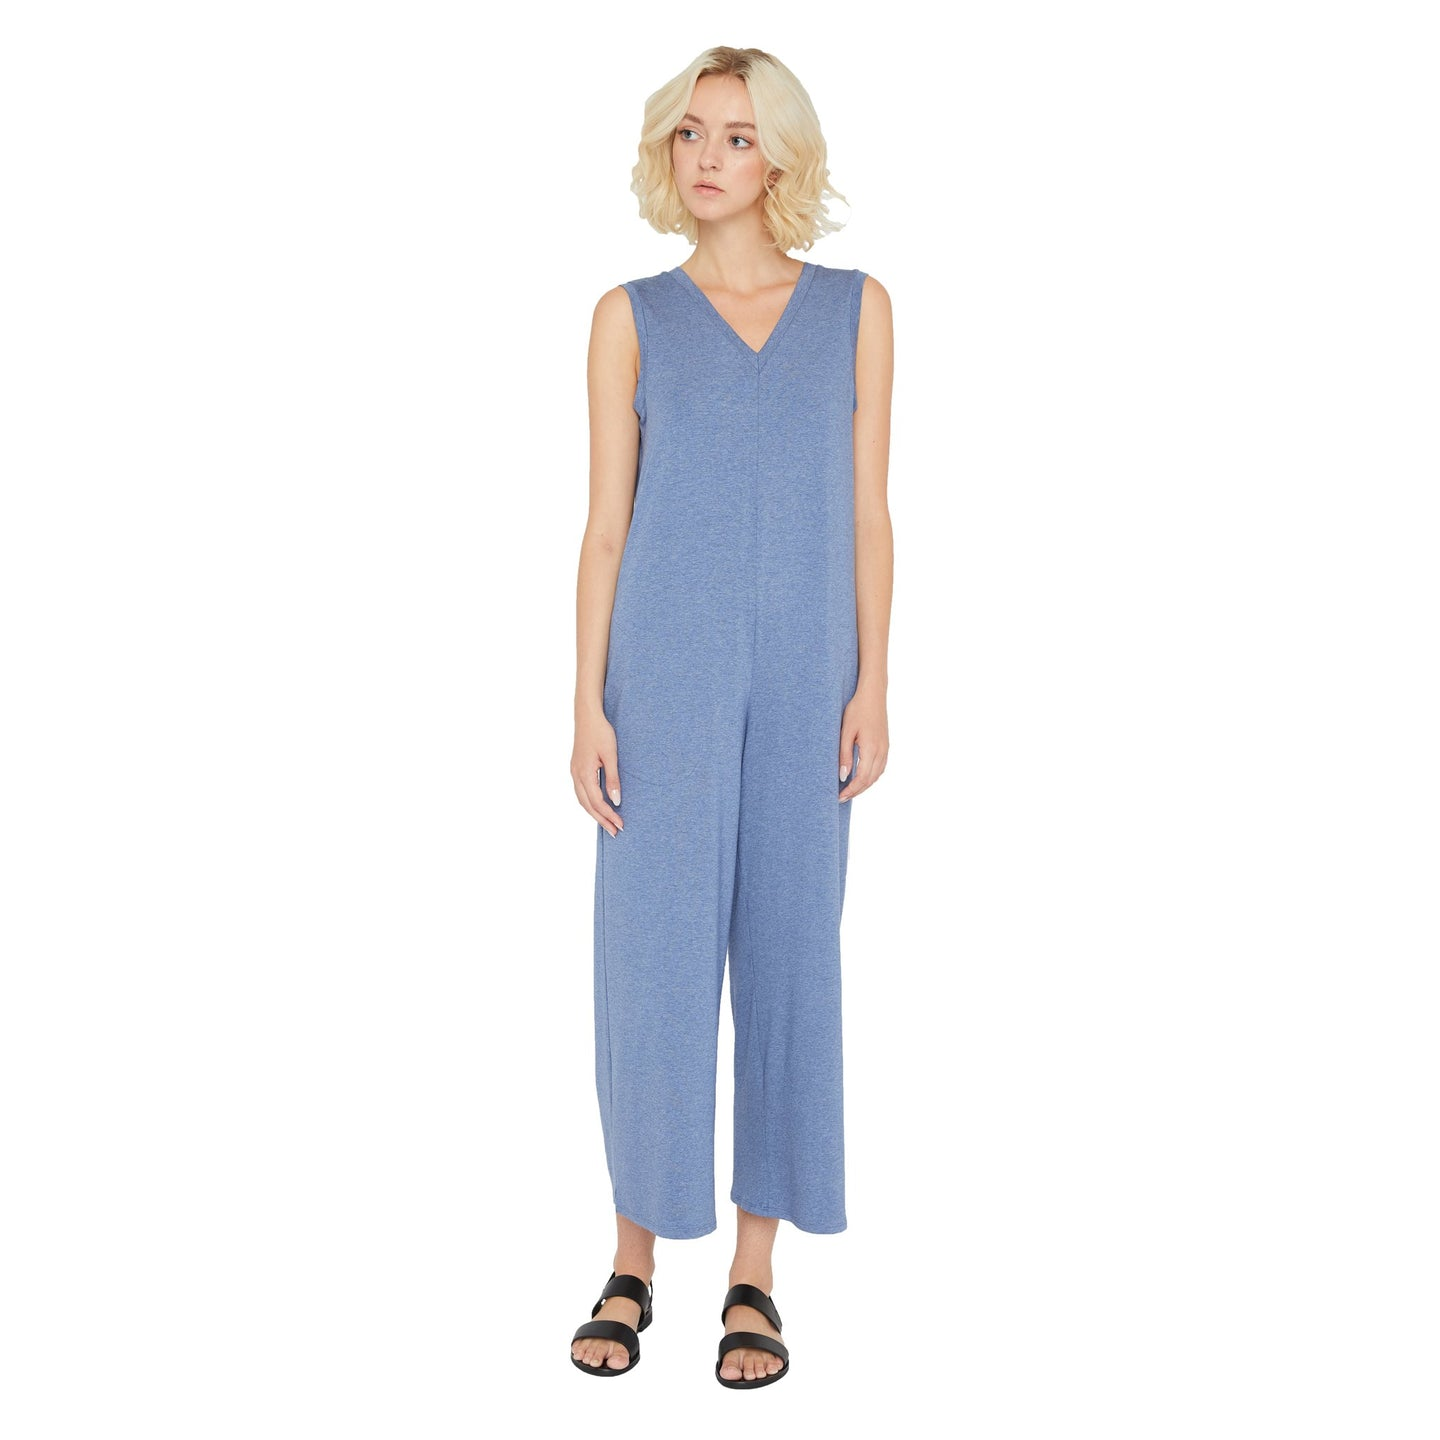 Sarah Liller | Rosaline Jumpsuit in Chambray